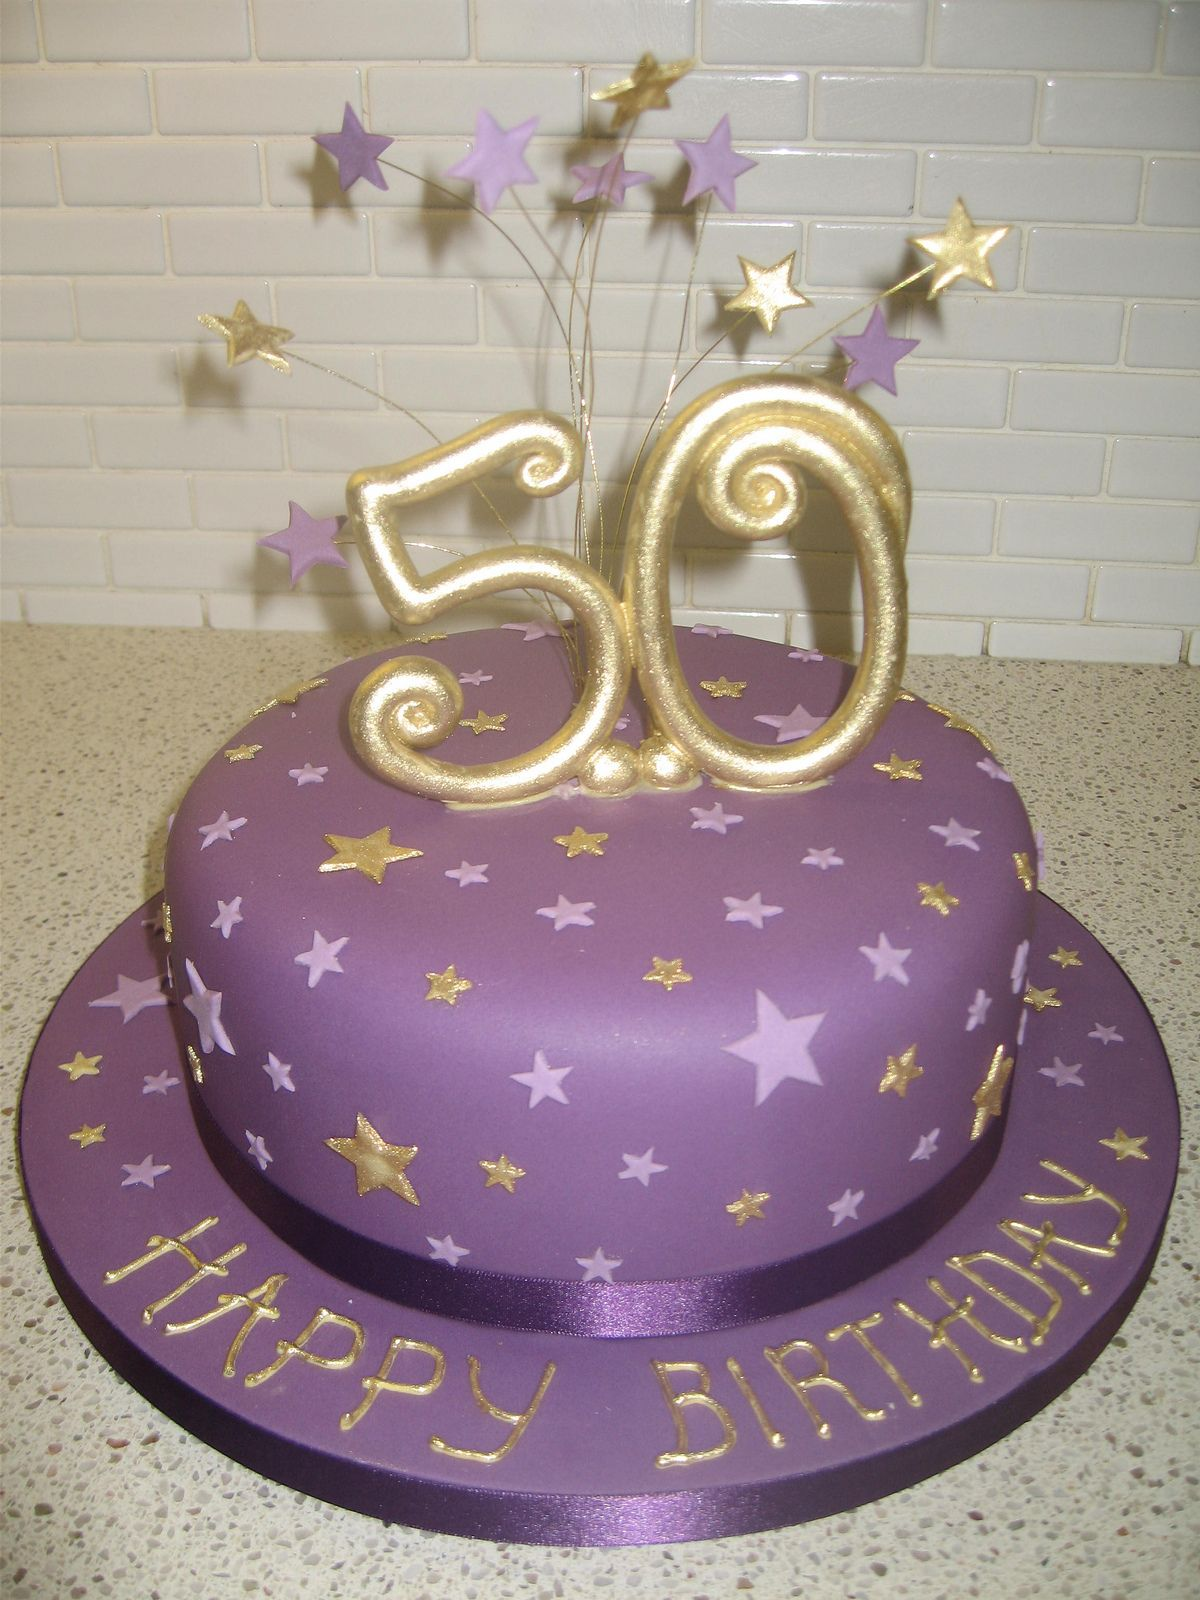 50th Birthday Cakes 50th Birthday ideas Pinterest Birthday